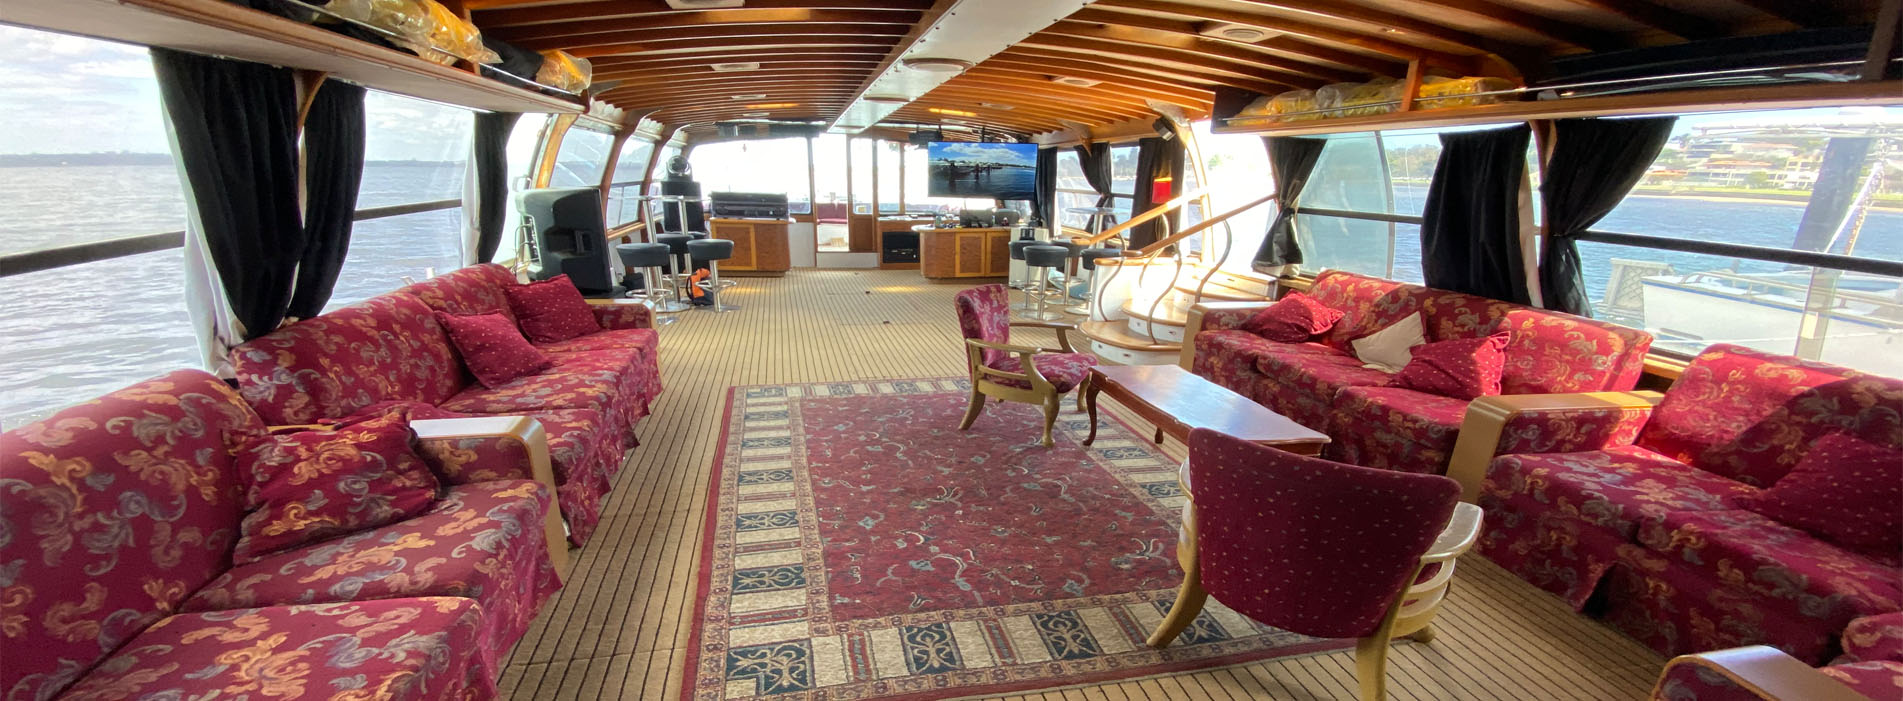 THE DECK interior party boat charters Swan River